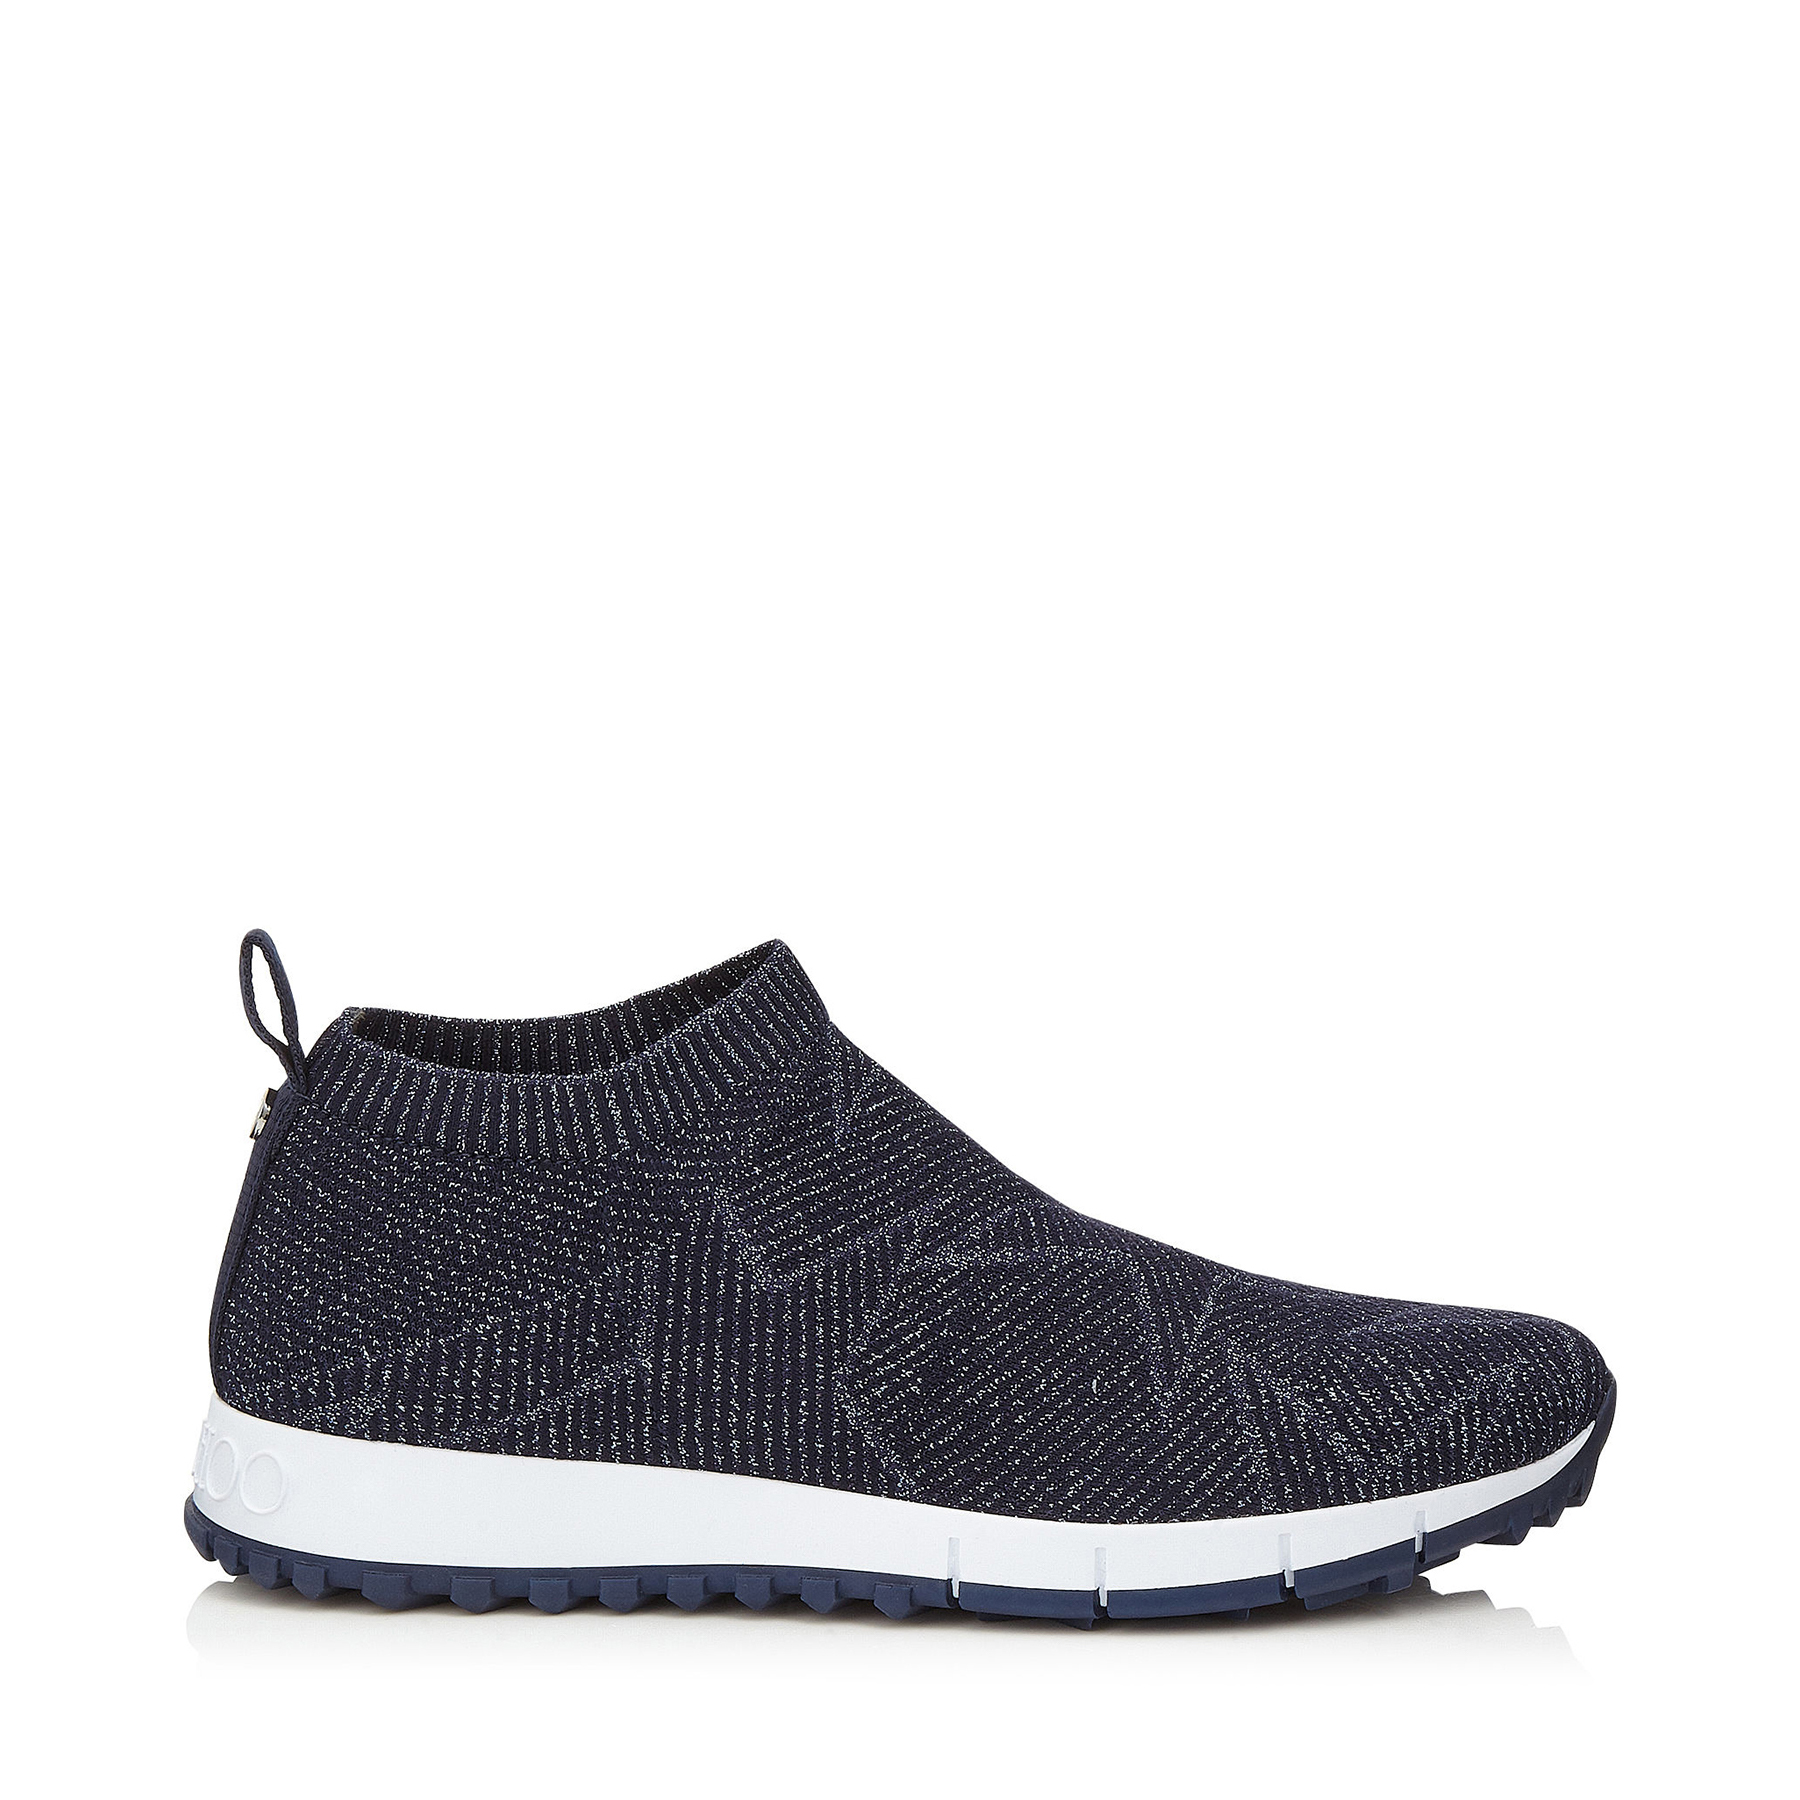 Norway Metallic Stretch-knit Sneakers - Black Jimmy Choo London Y5vSJYGGb